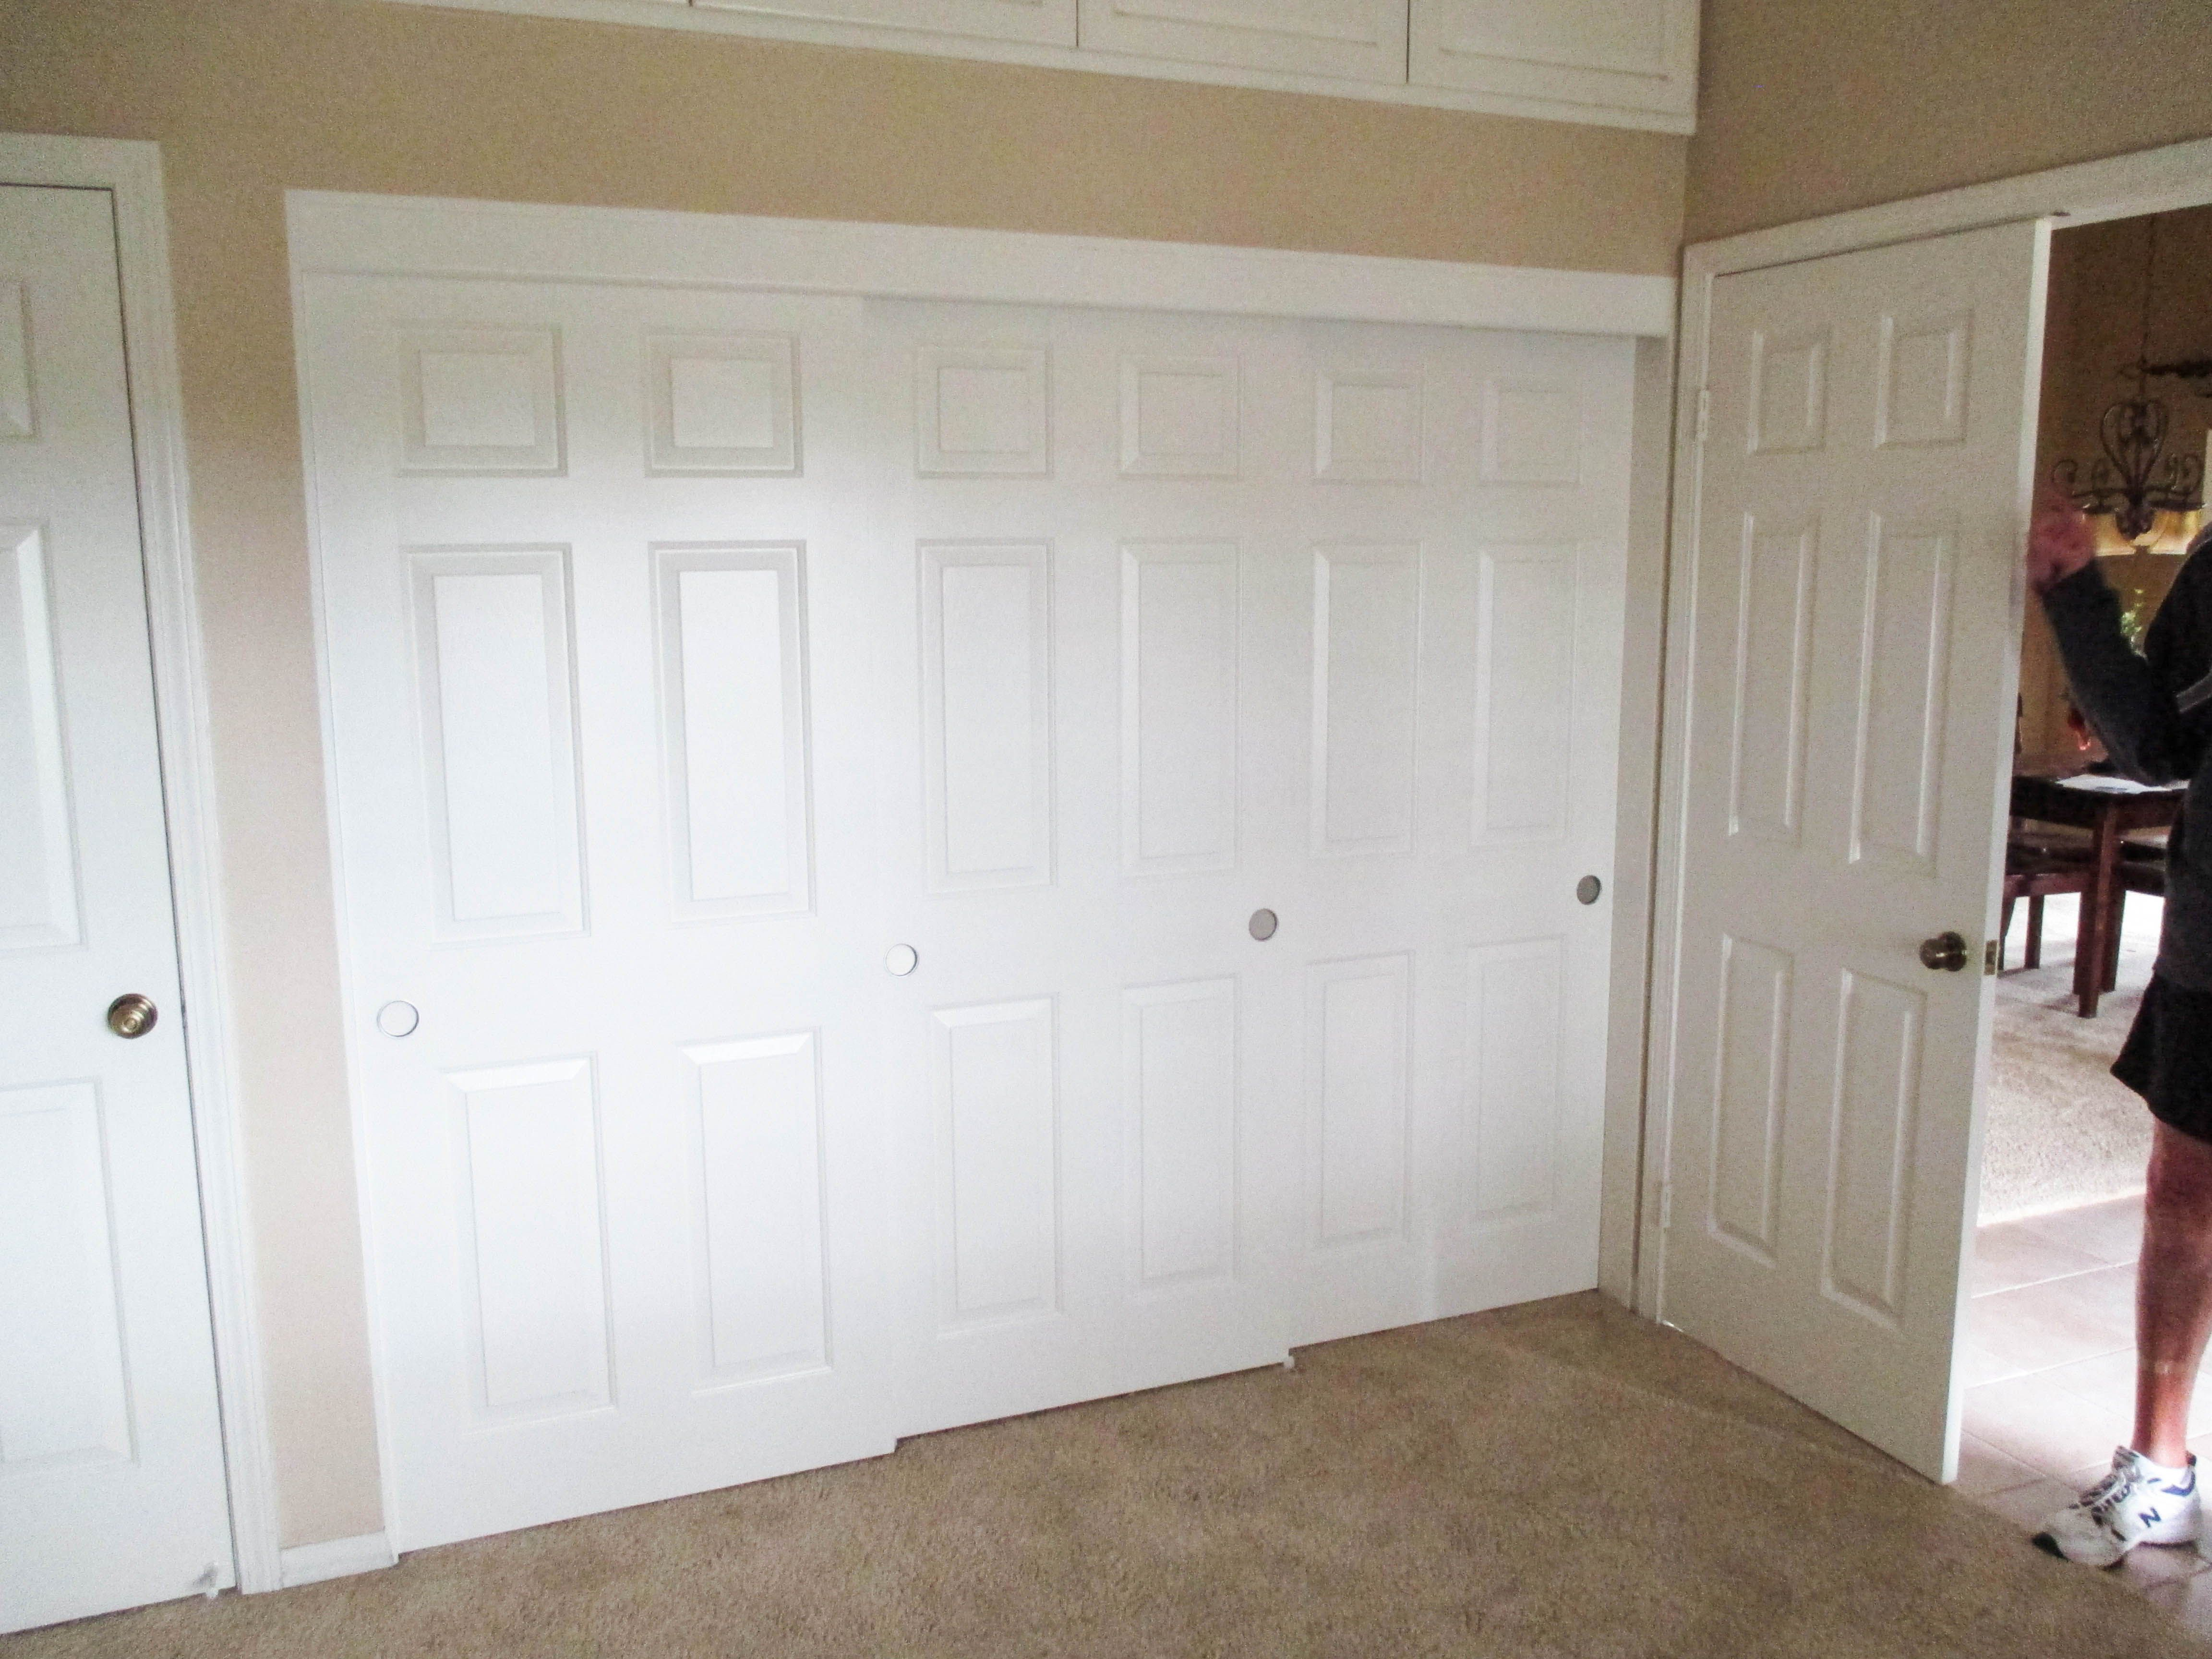 Check Out This Top Hung 3 Track 3 Panel Sliding Hollow Core Closet Doors With Colonial Designs Installed By Classic If You Need A N Closet Doors Home Design